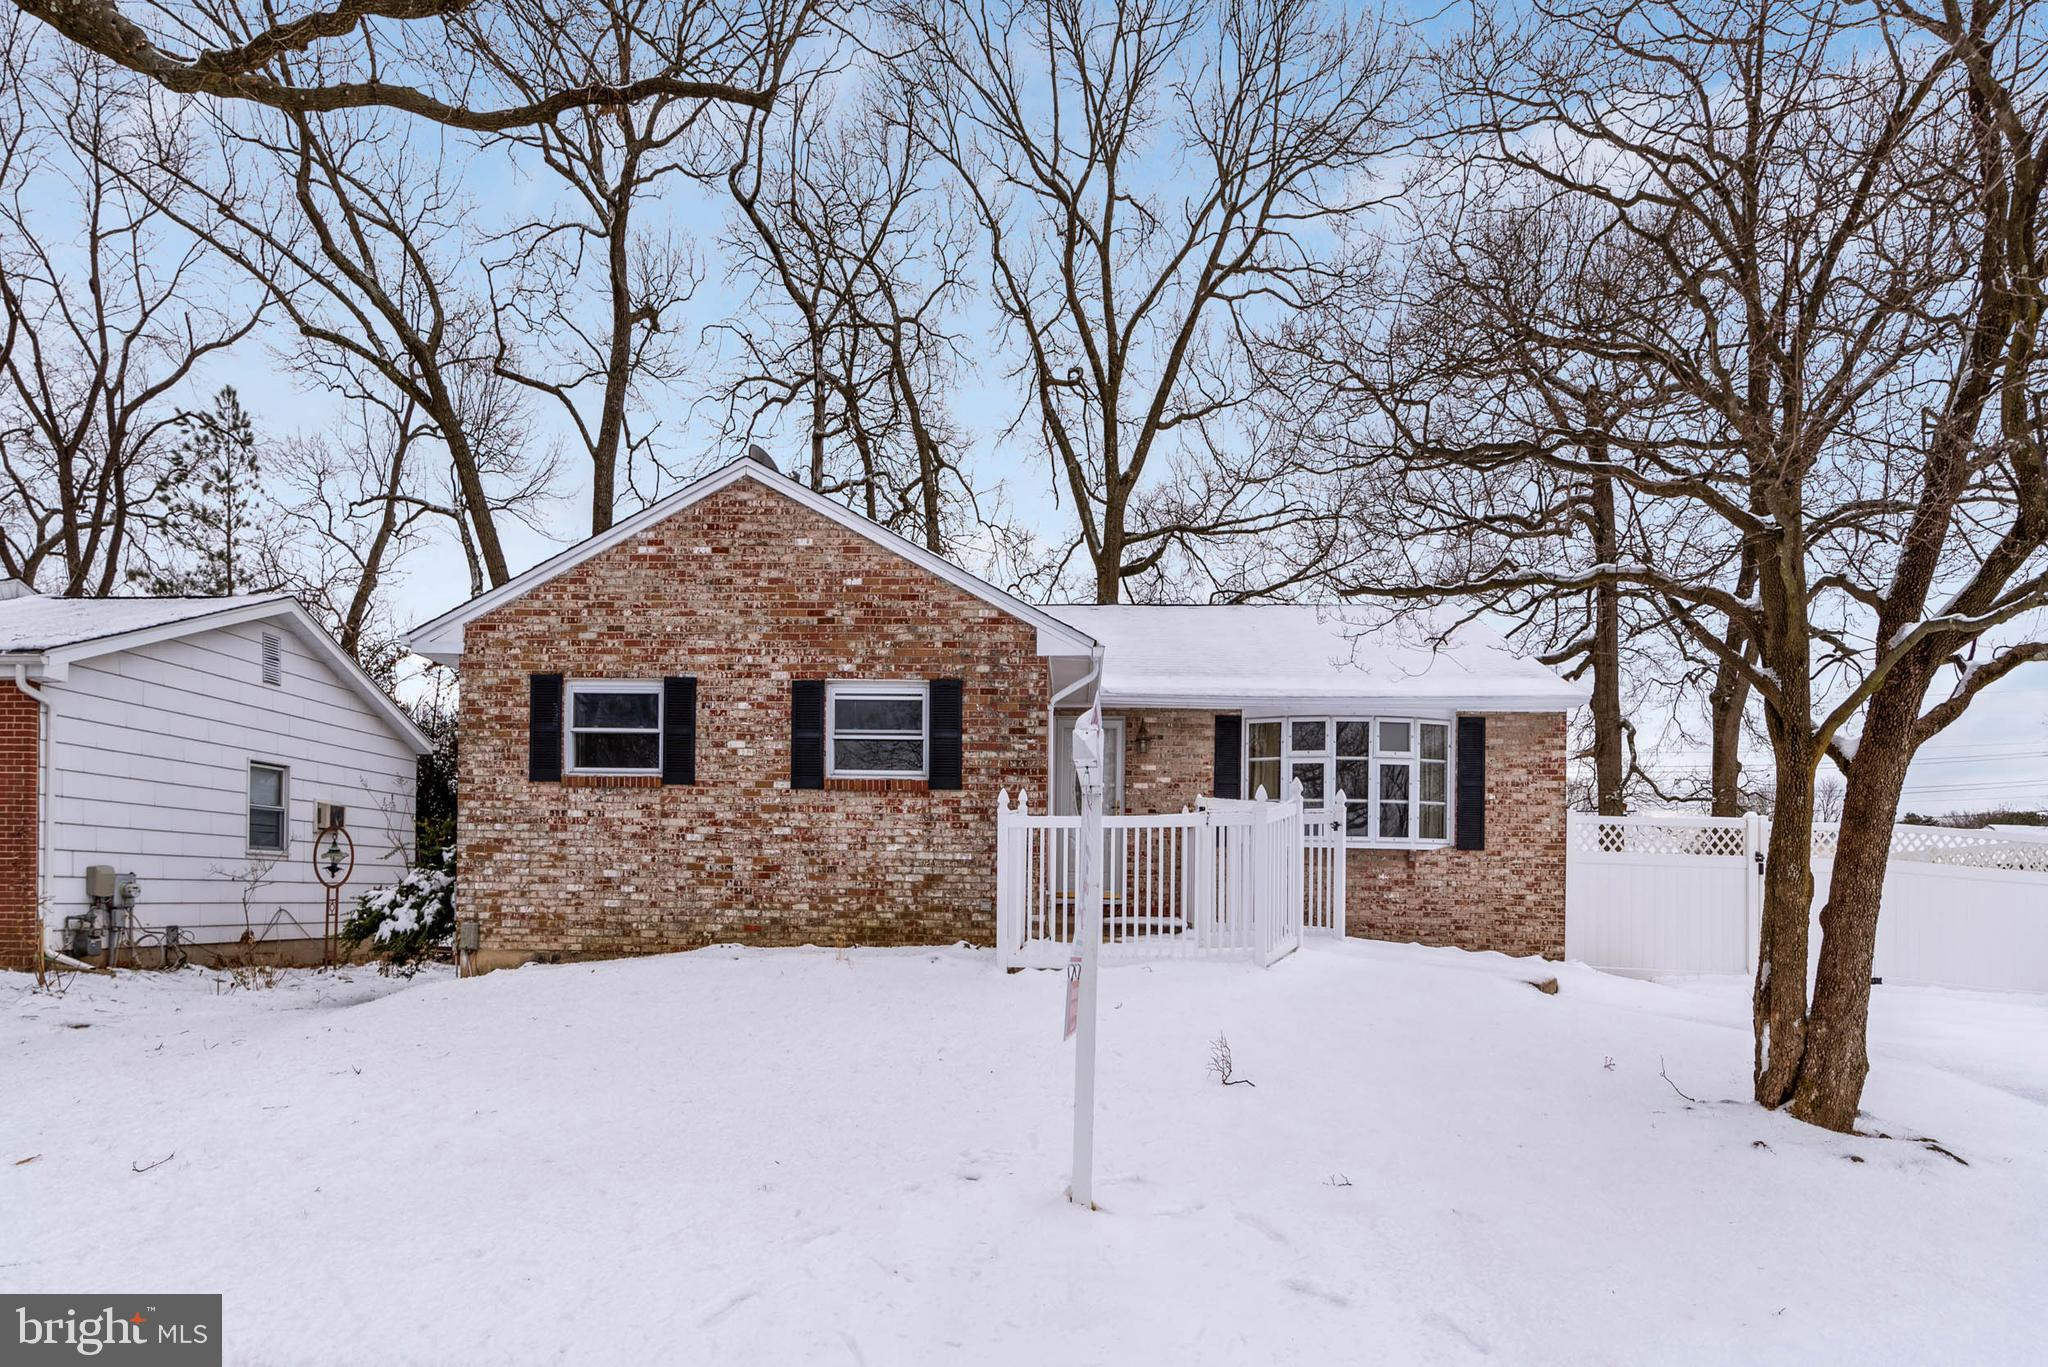 If you are looking for a Rancher with lots of room look no further. This 5 bedroom, 3 full, 1 1/2 ba